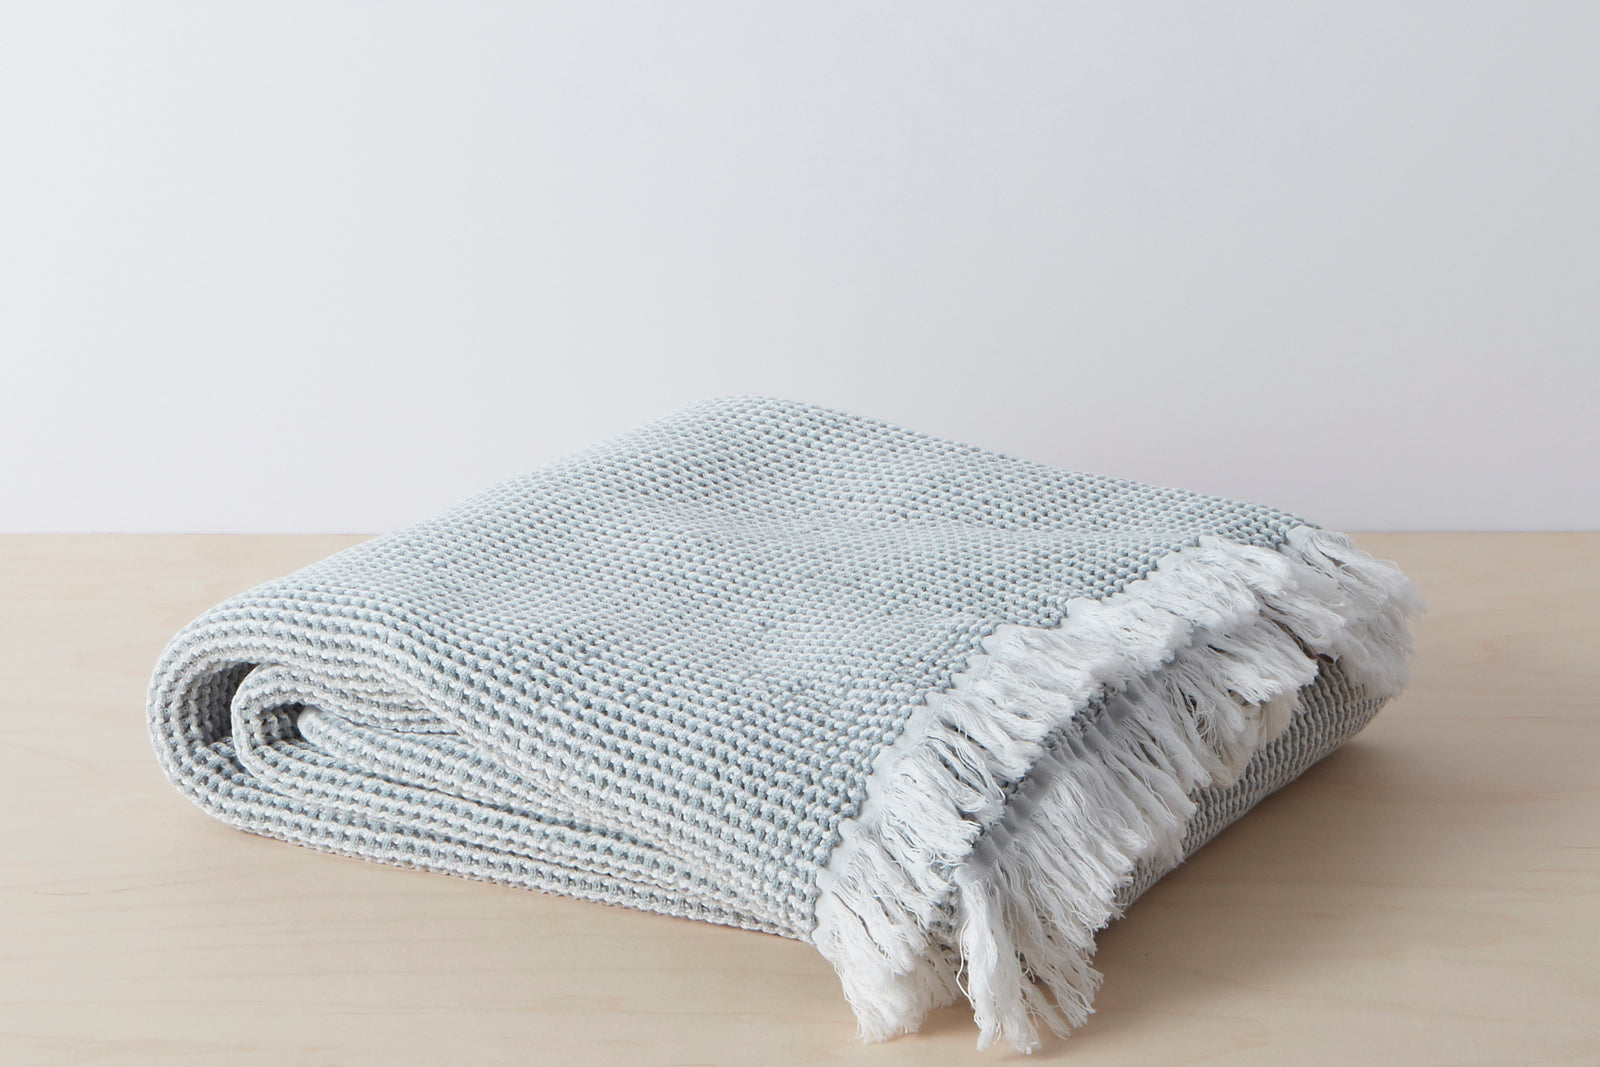 Stonewashed Cotton Throw; color: grey